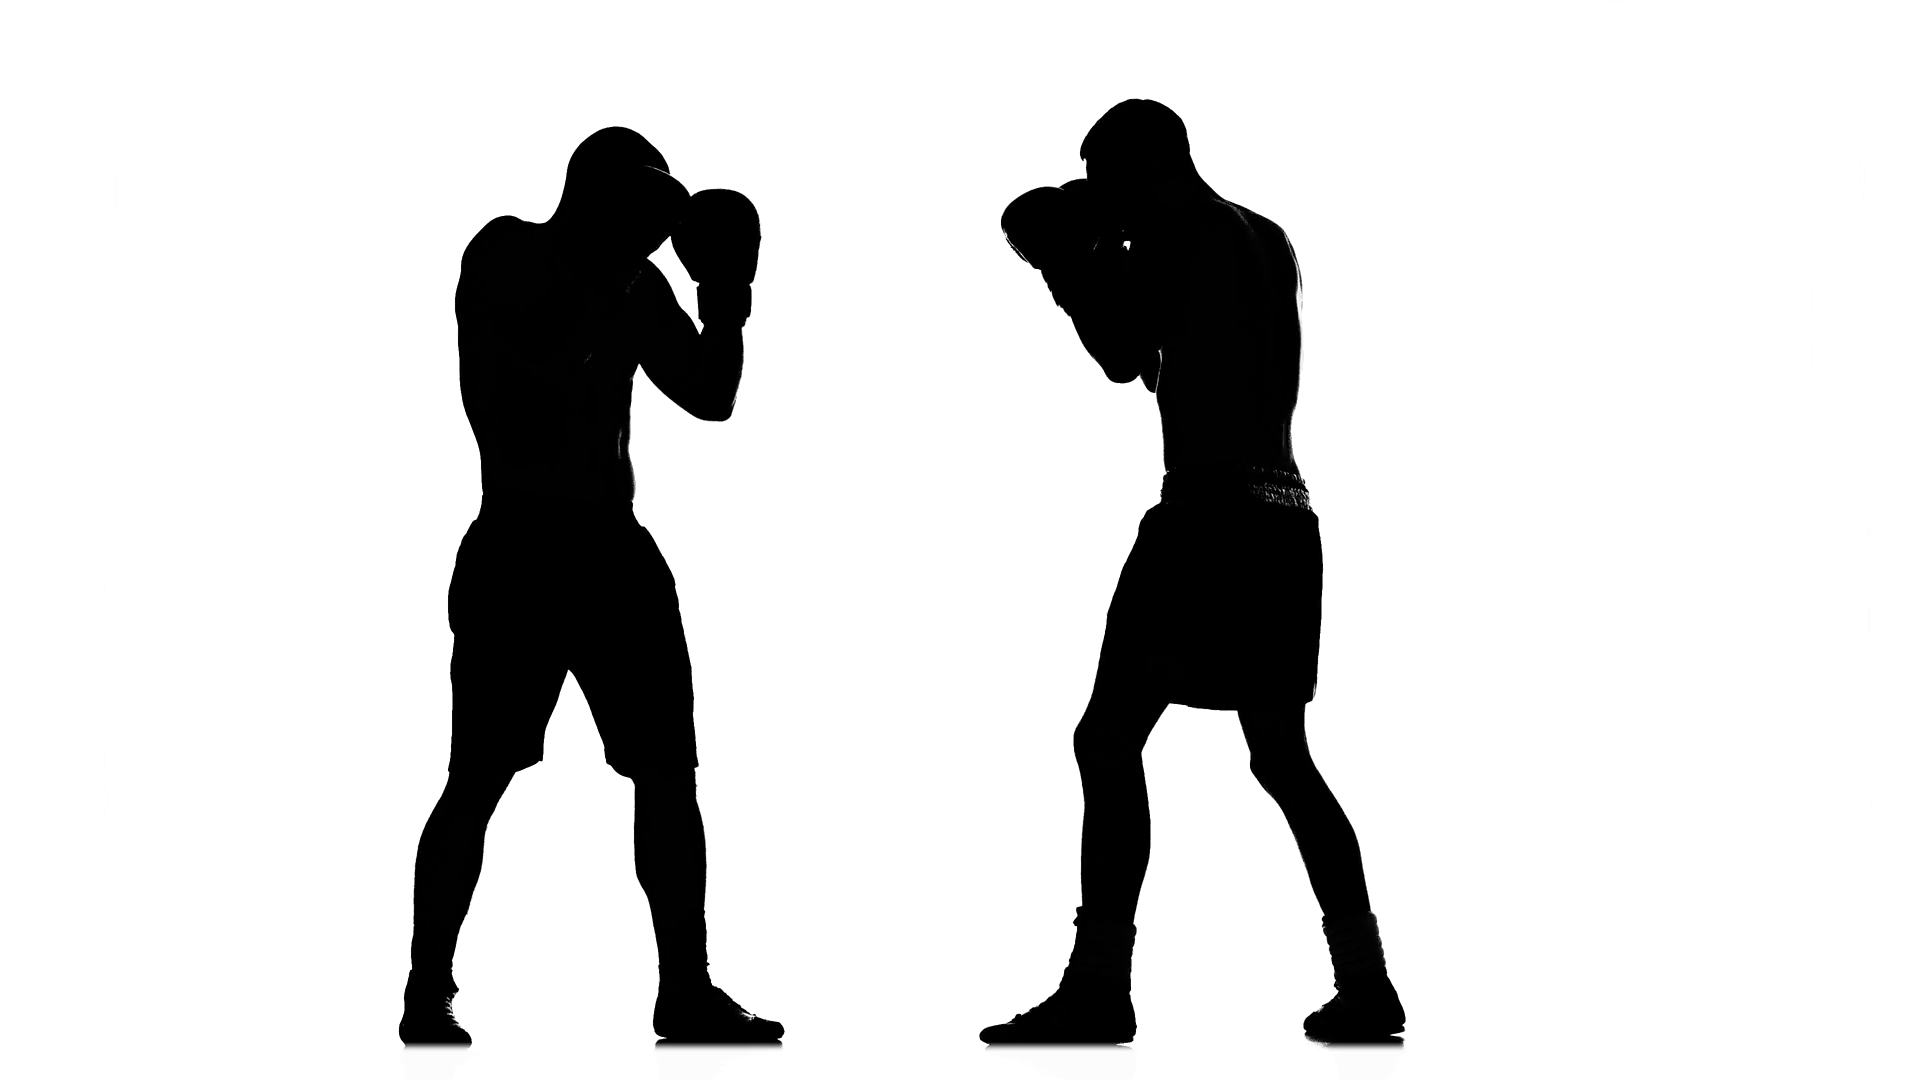 1920x1080 Intensive And Intense Fight Between Two Boxers. Black Silhouette